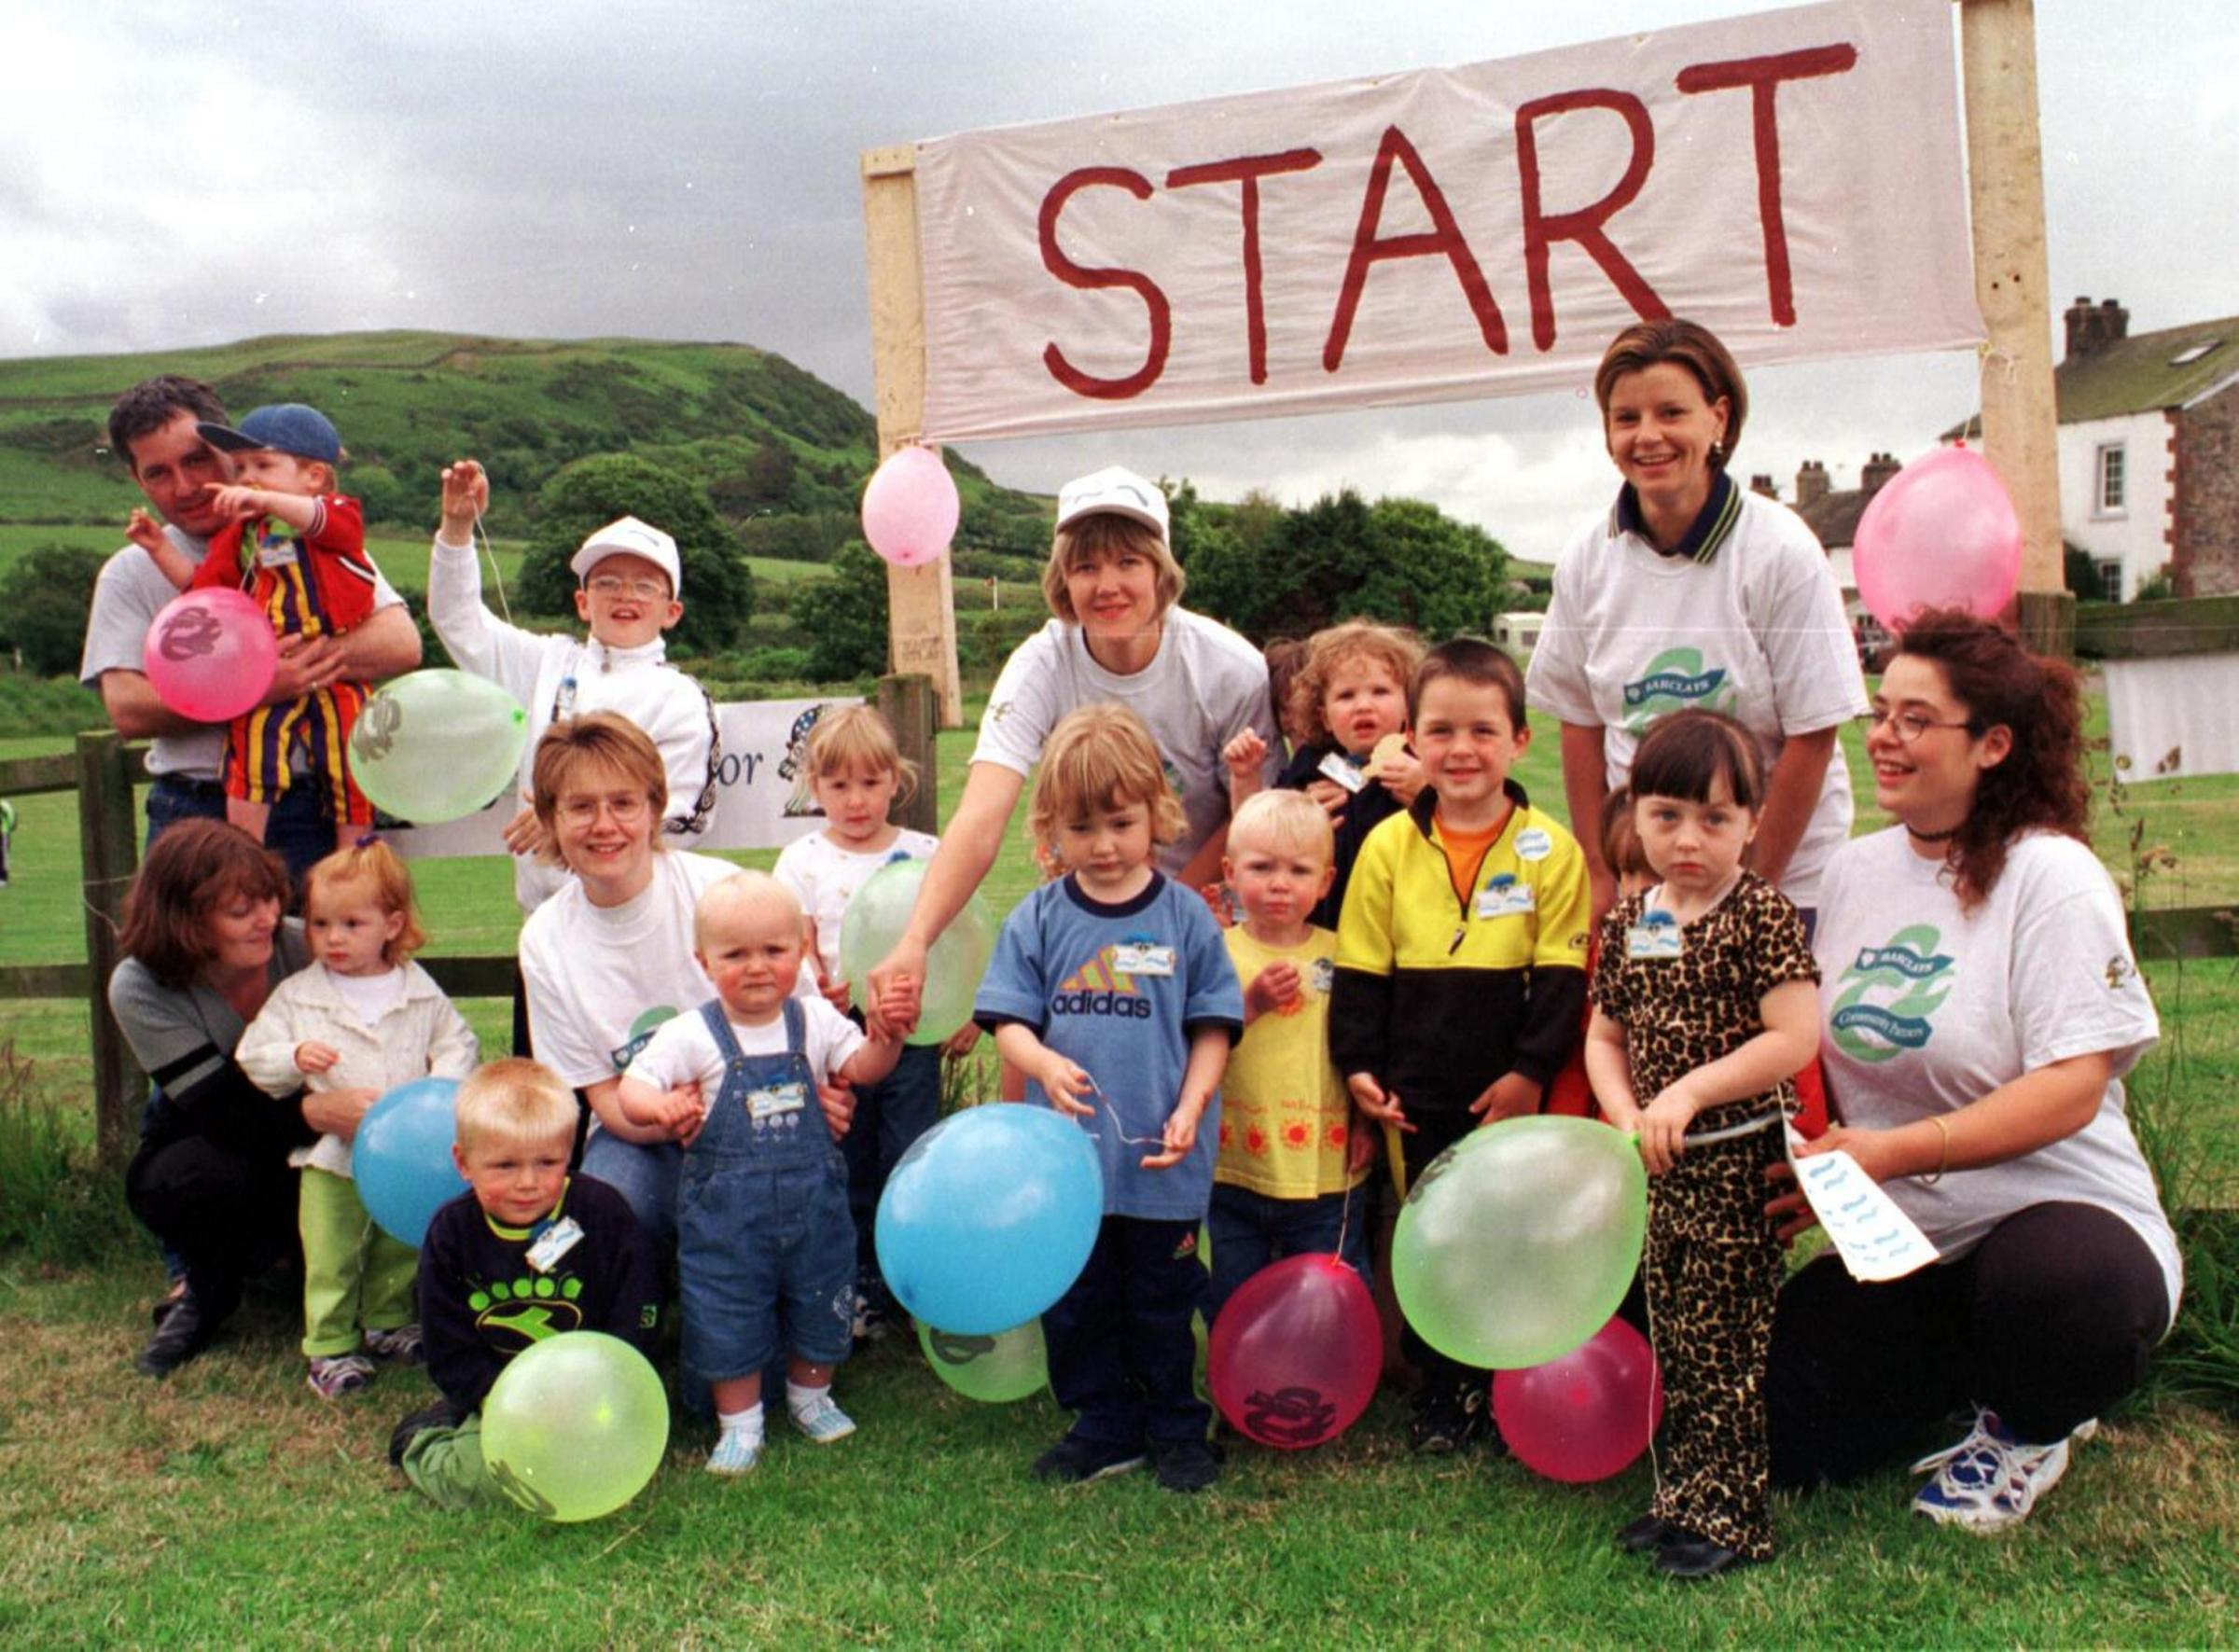 Event: Mothers with their children, ready to start the Toddlerthon at a June 1999 open day for Silecroft and Kirksanton playgroup